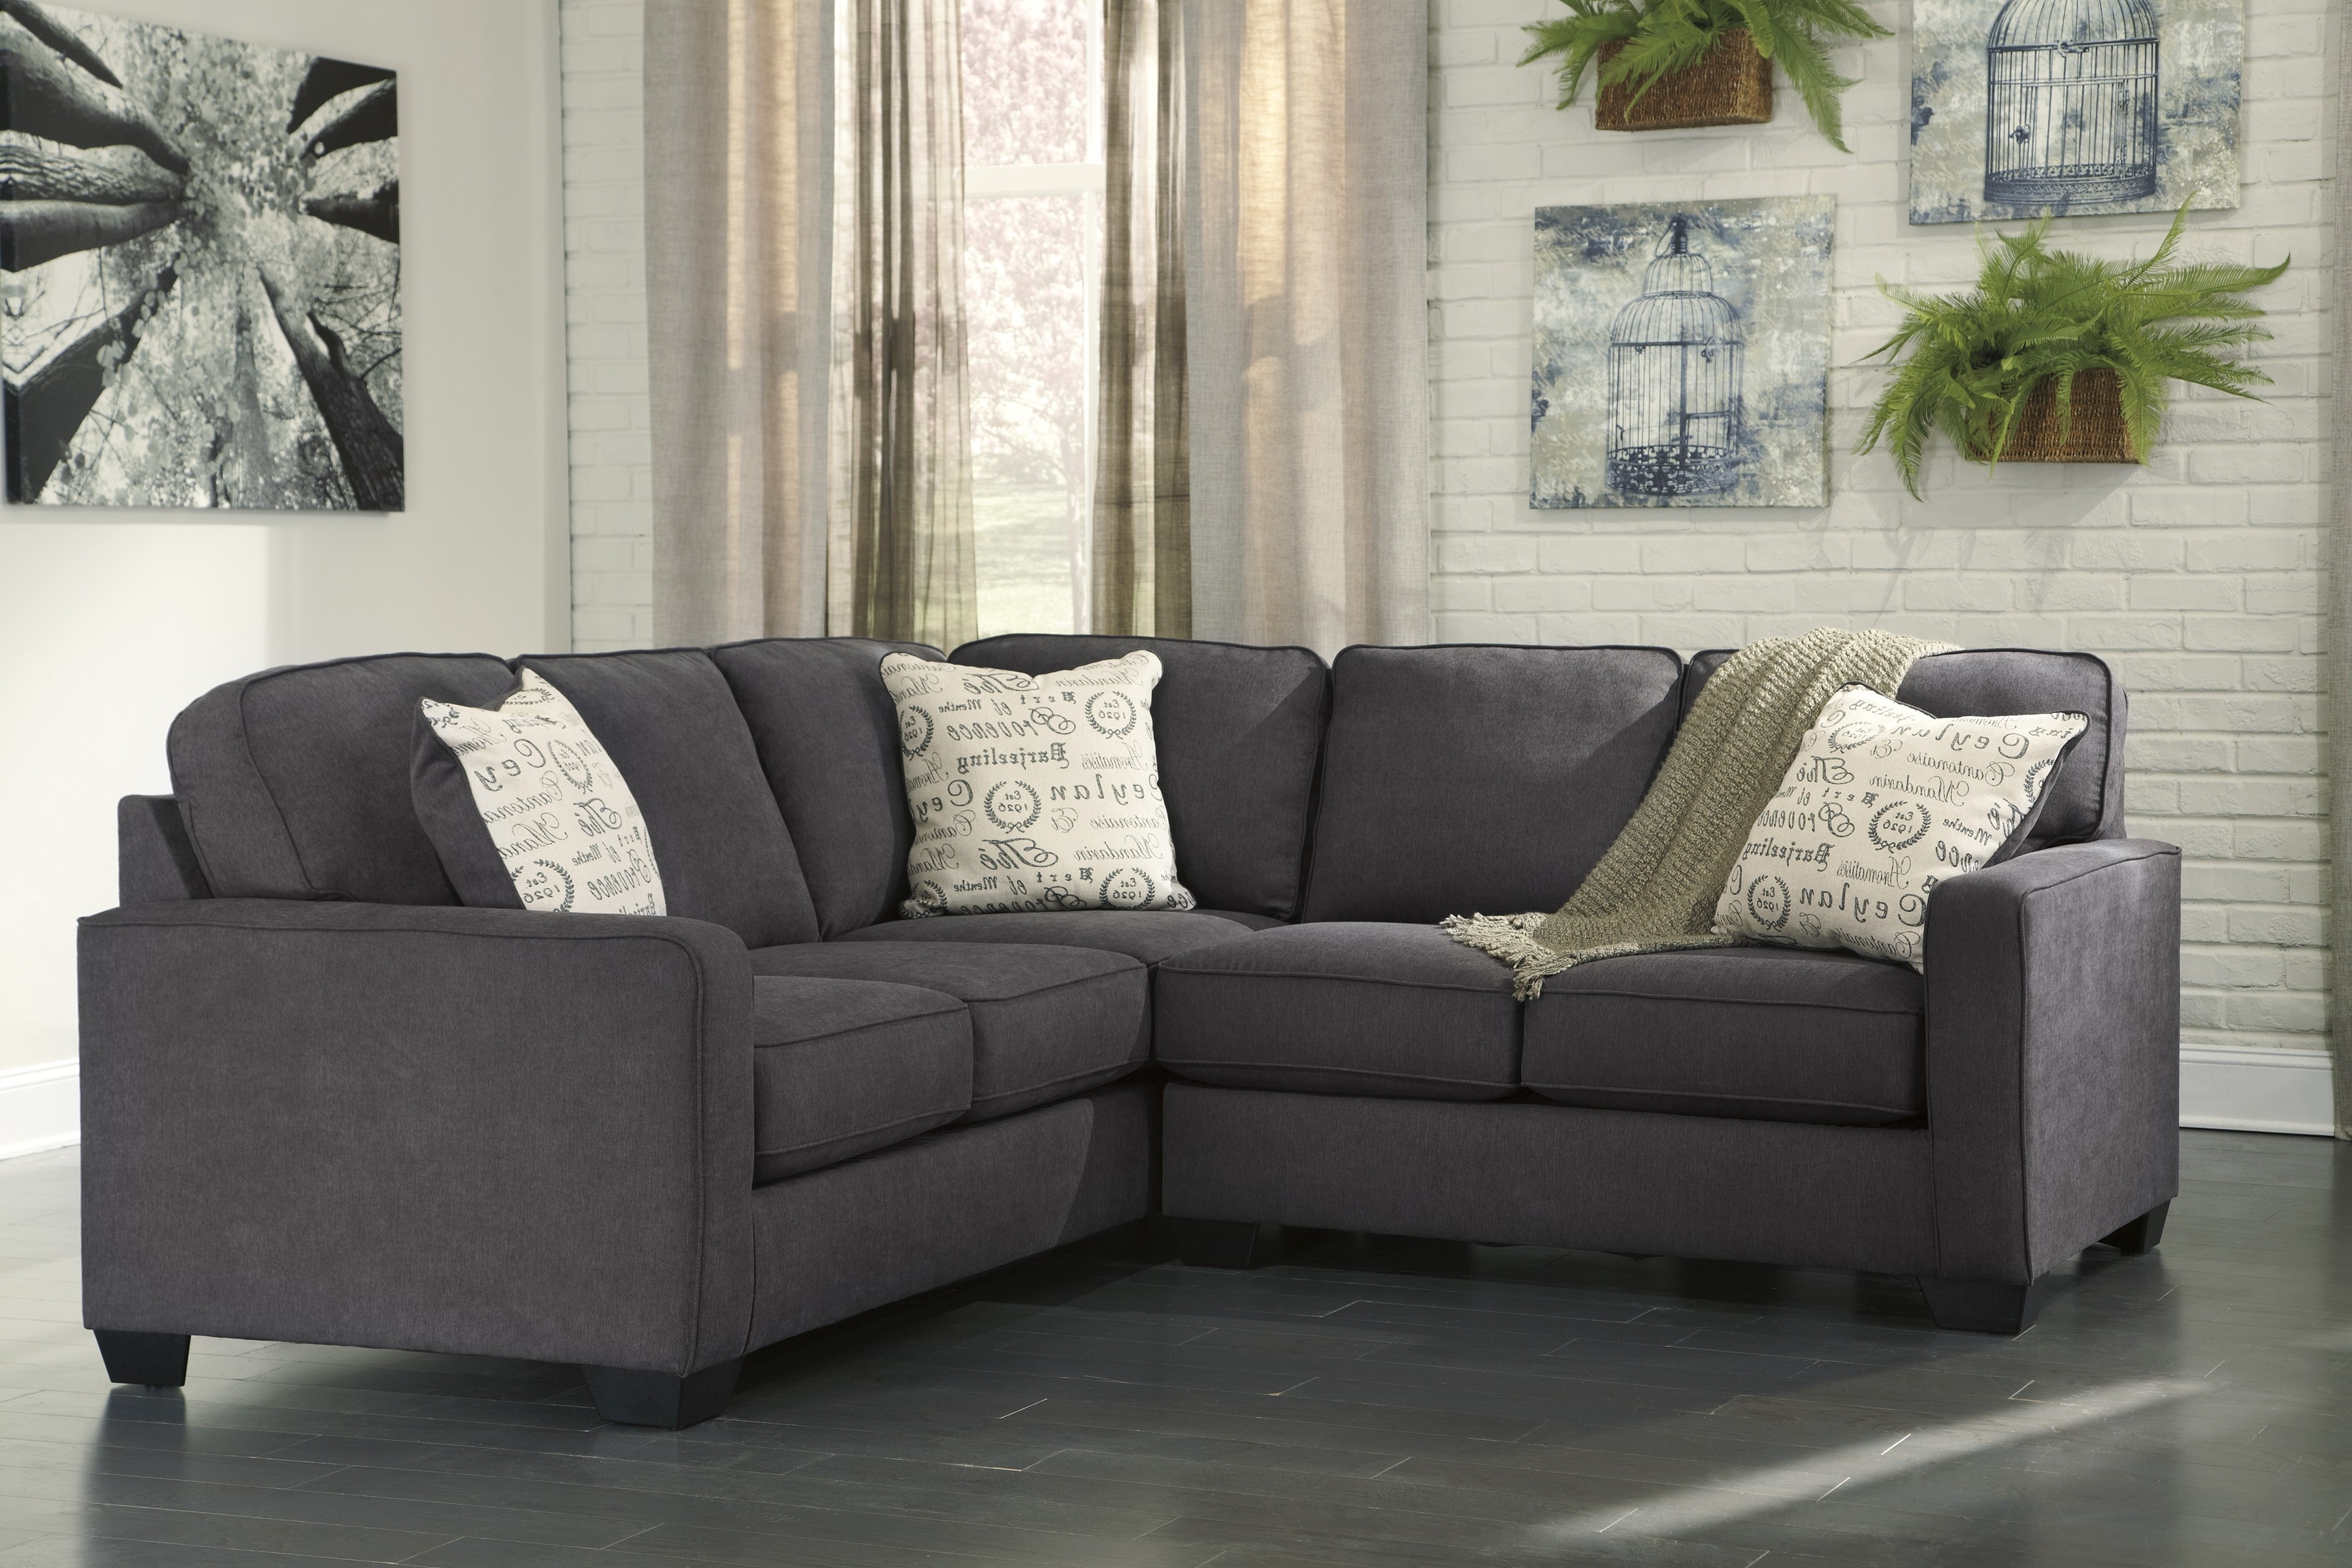 Most Recent Alenya Charcoal 2 Piece Sectional Sofa For $ (View 9 of 15)